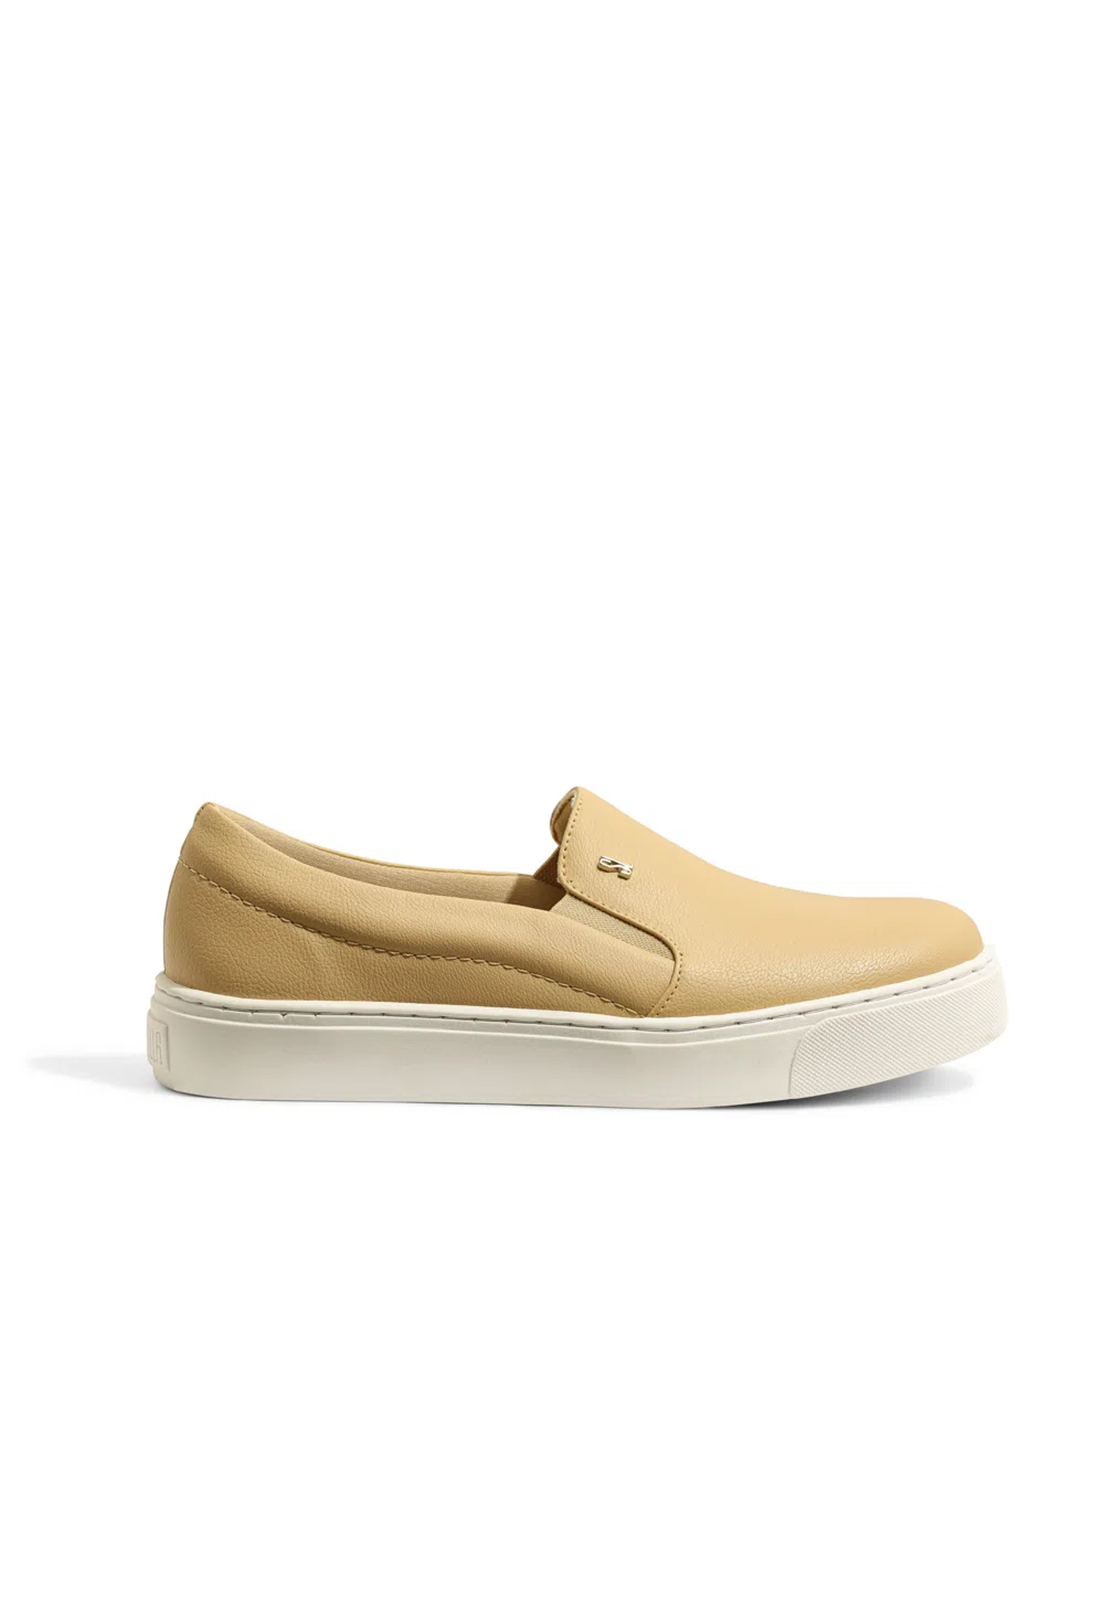 SLIP ON SANTA LOLLA NAPA FLOATER BEGE - 01AC.11E4.002F.01E9